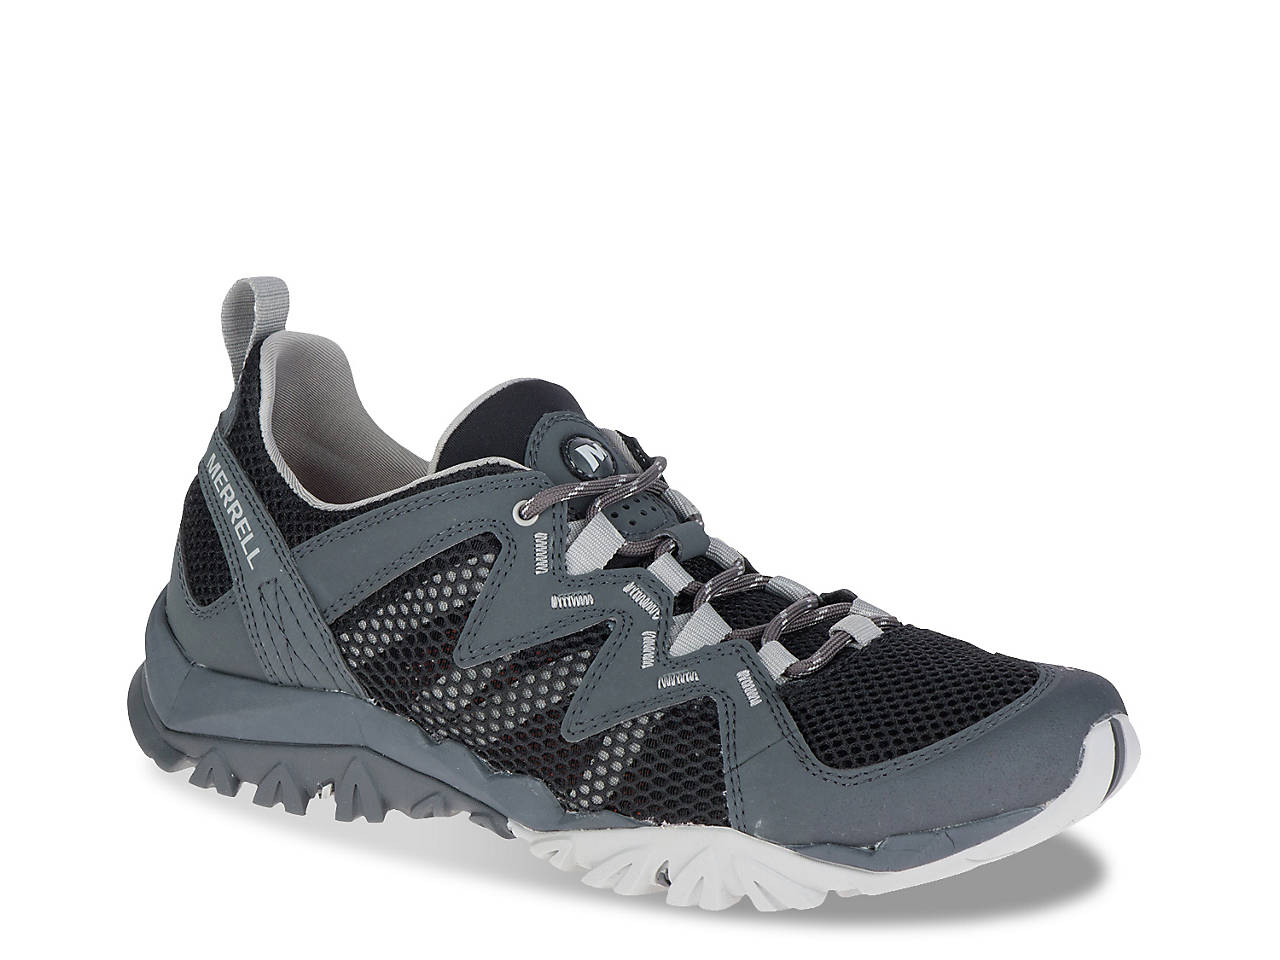 latest collection latest selection special buy Tetrex Rapid Crest Trail Shoe